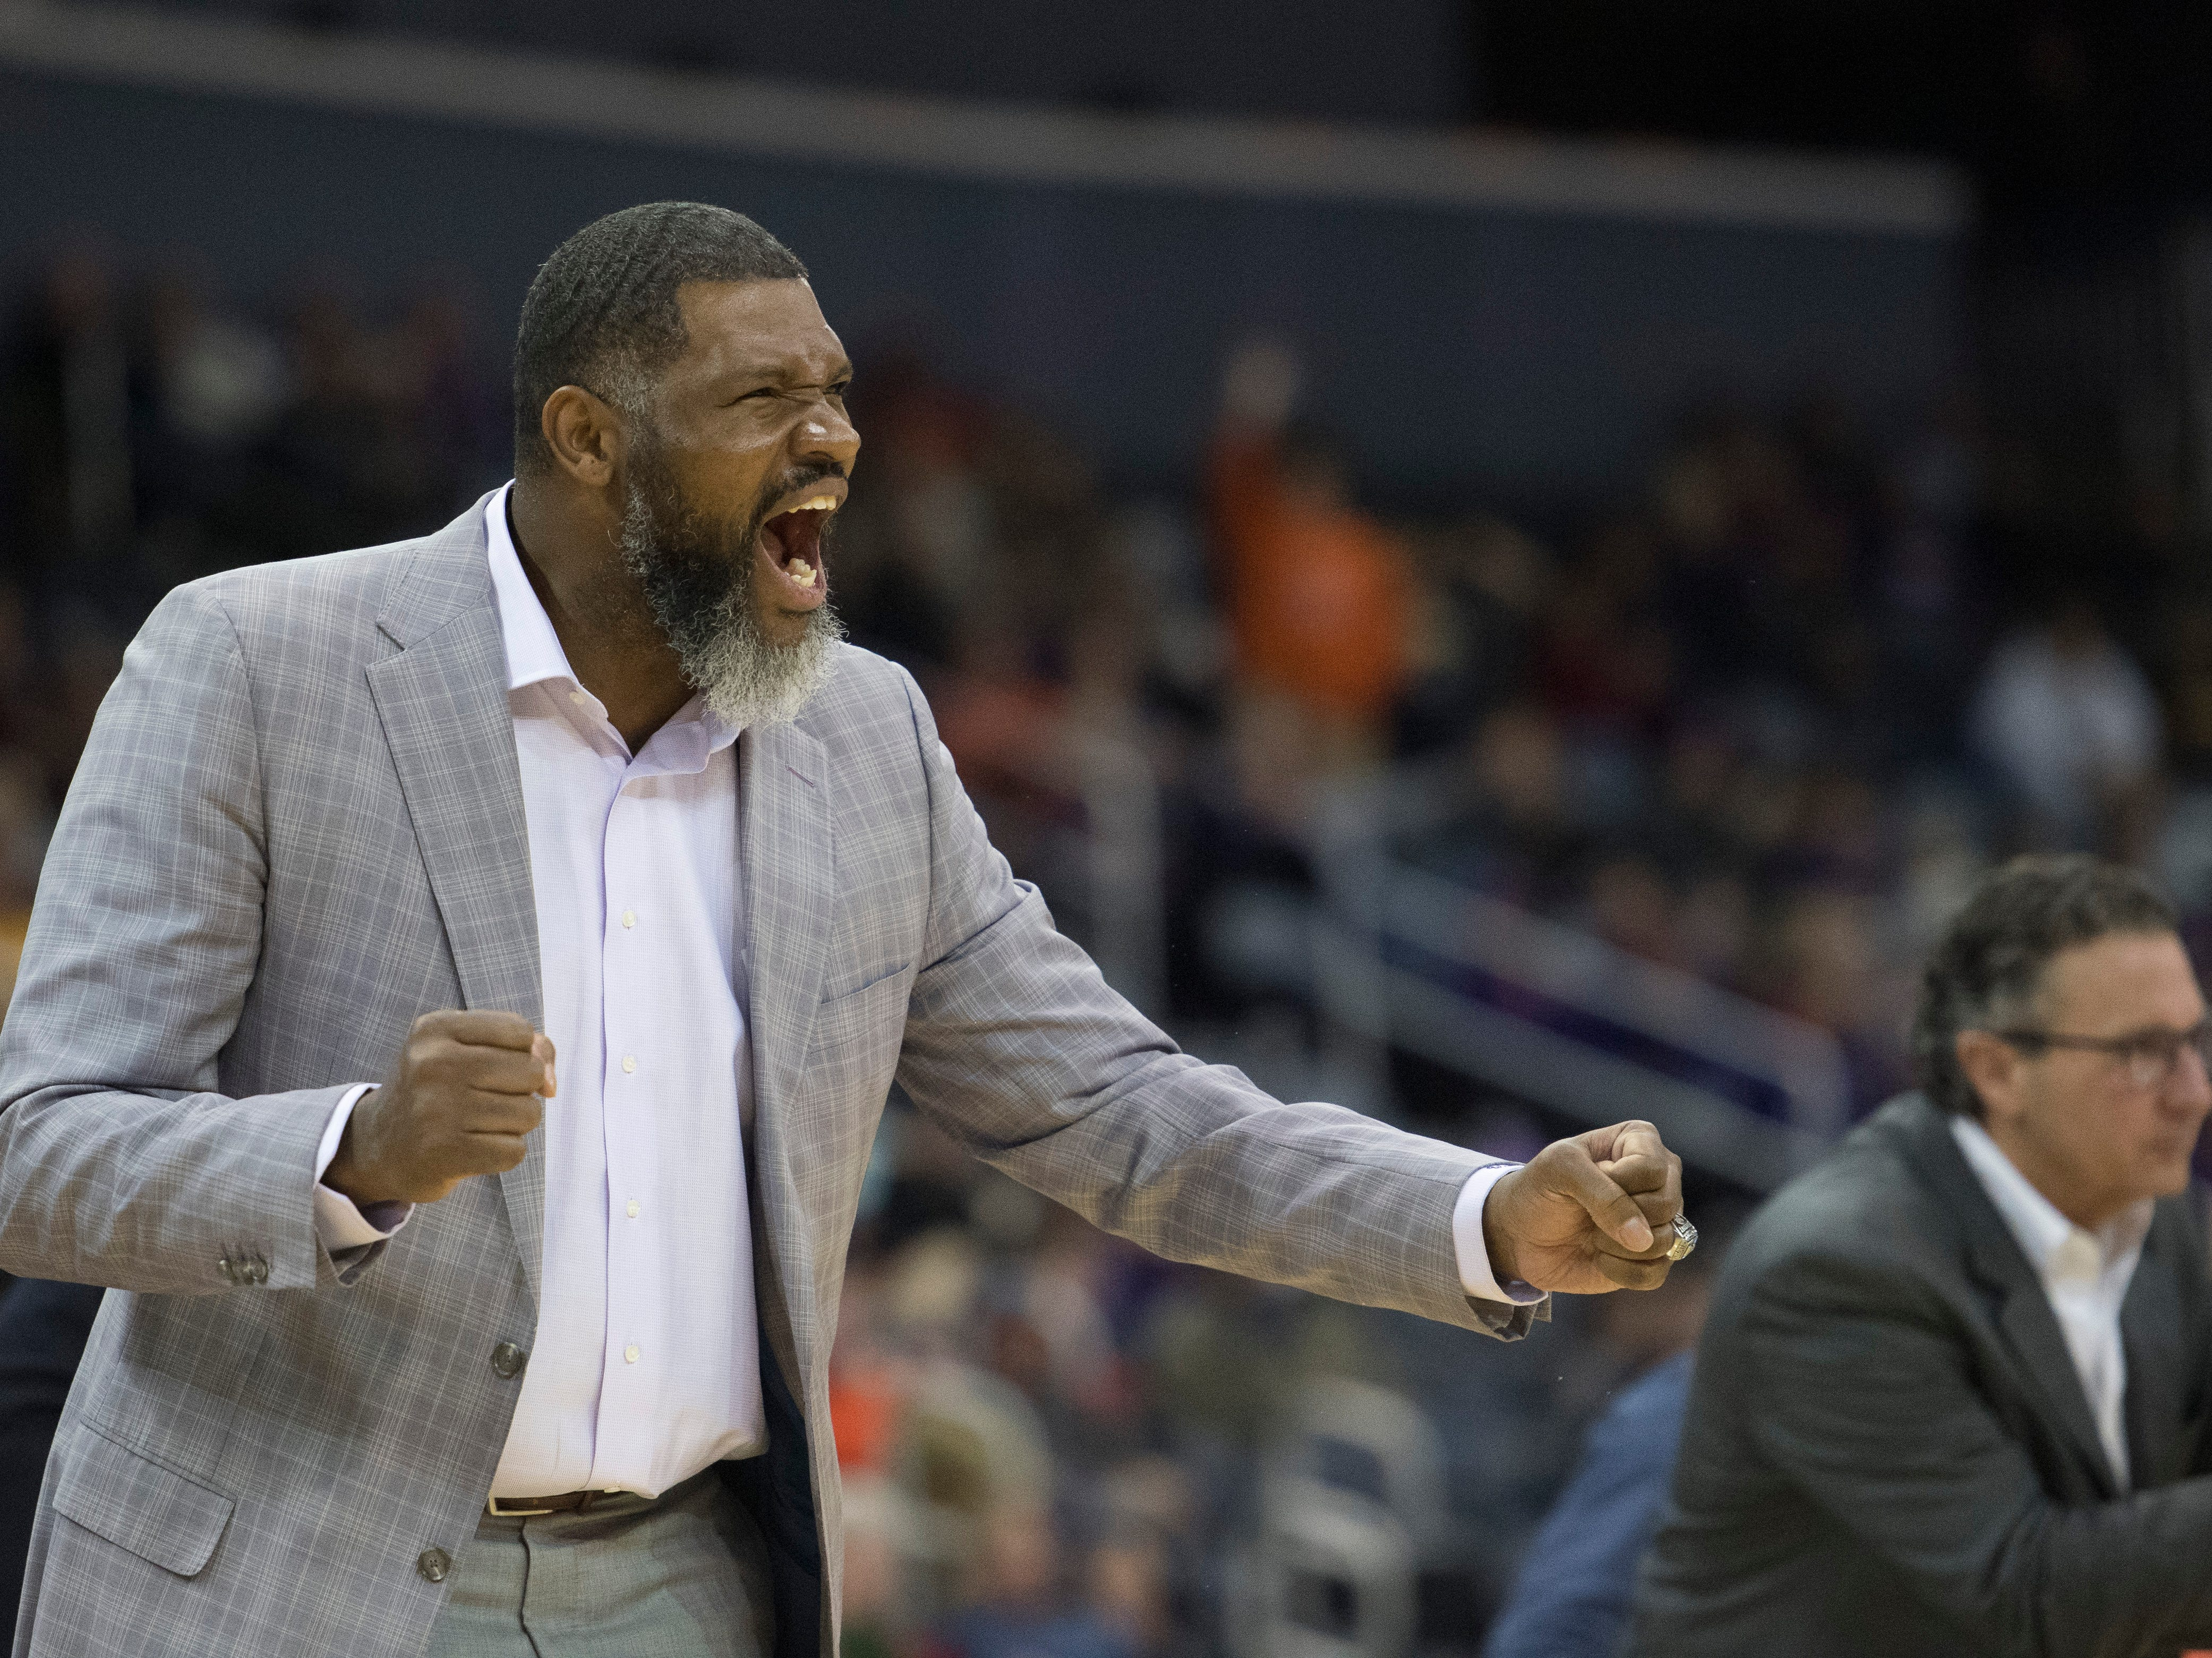 UE Head Coach Walter McCarty celebrates  during the UE vs Wyoming game at the Ford Center Wednesday, Nov. 28, 2018. UE won 86-76.